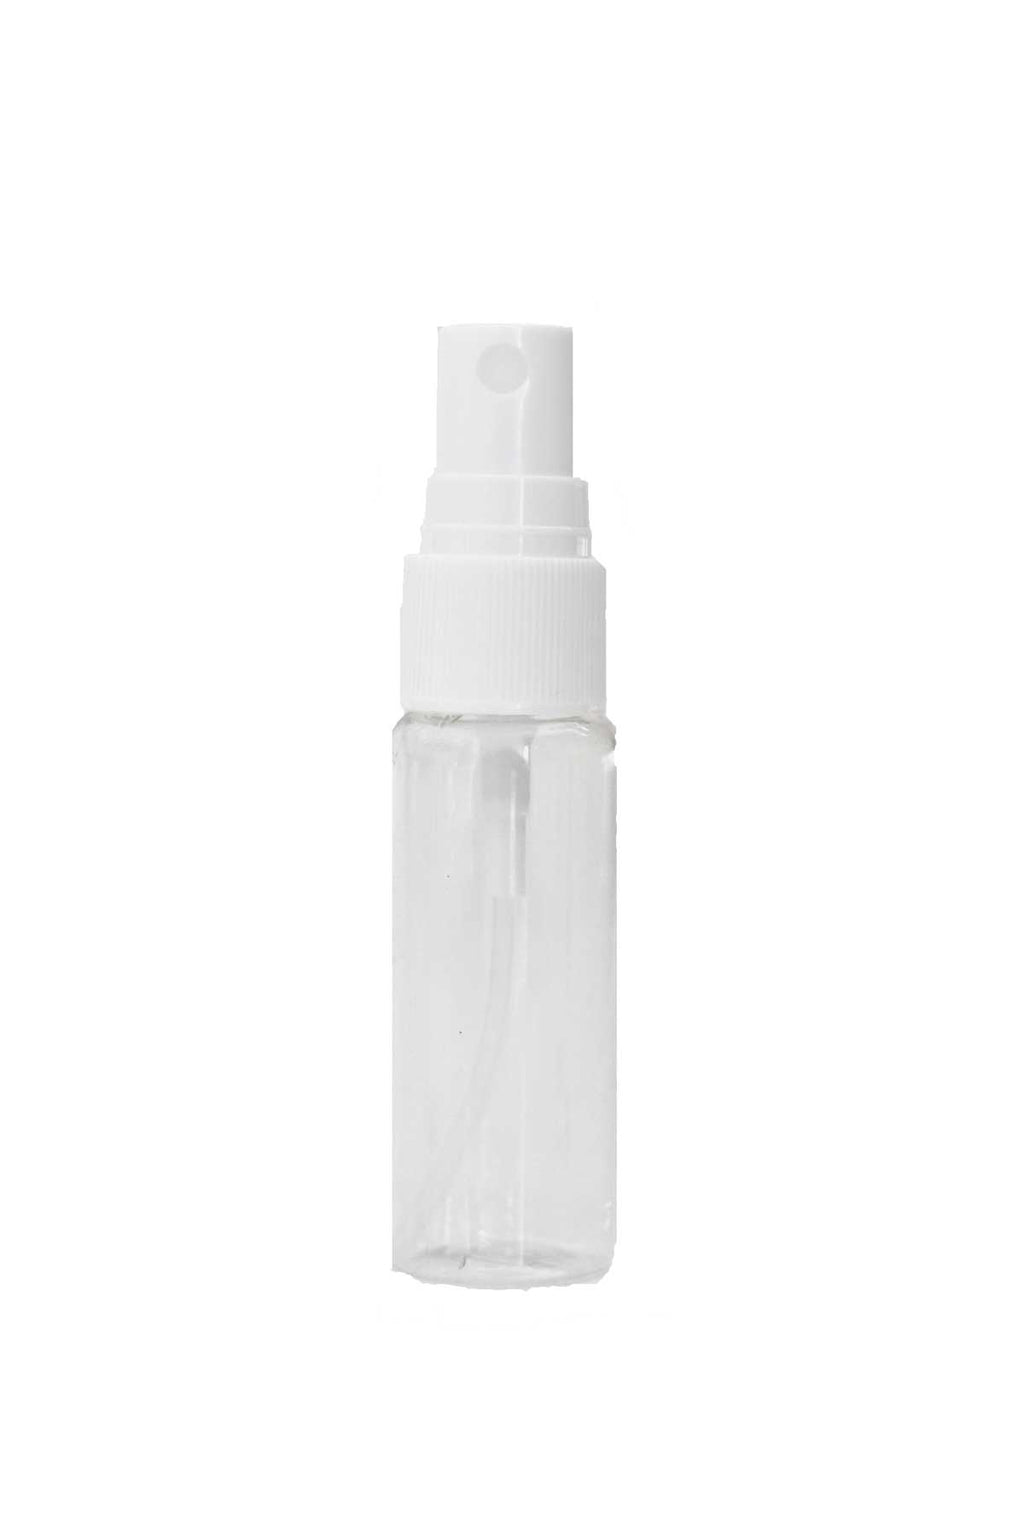 FREE mini spray bottle